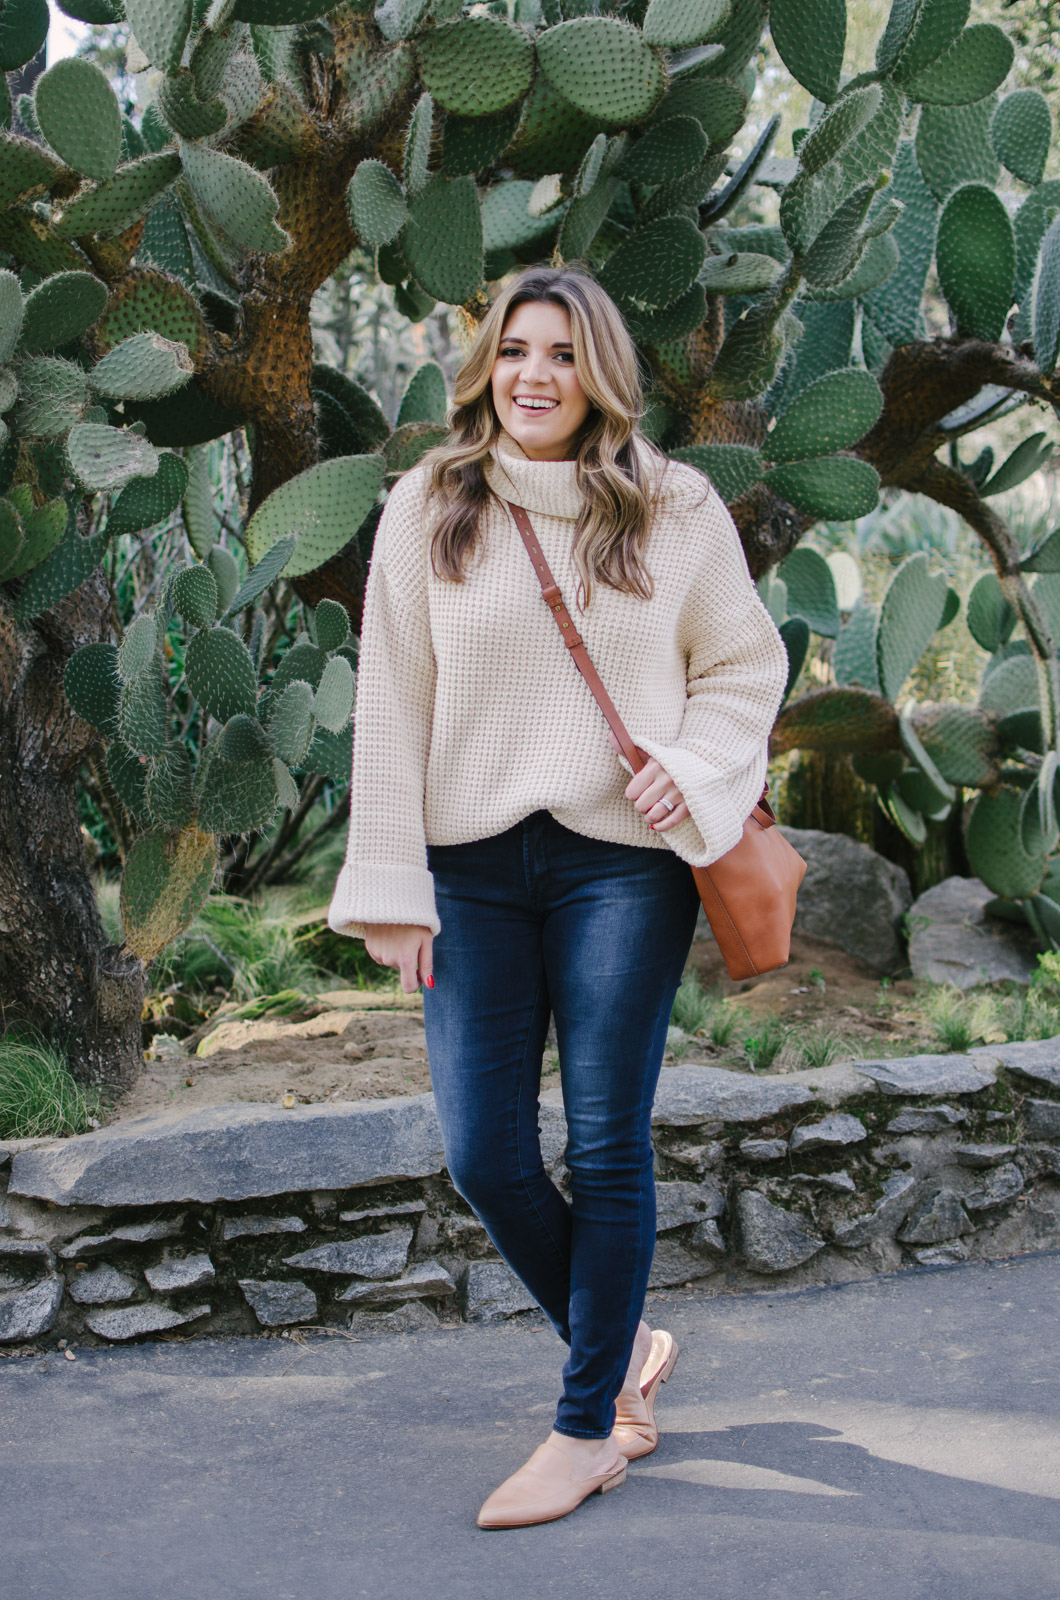 chunky sweater outfit - how wear chunky turtleneck sweater | shop this look or see more cute winter outfits at bylaurenm.com!